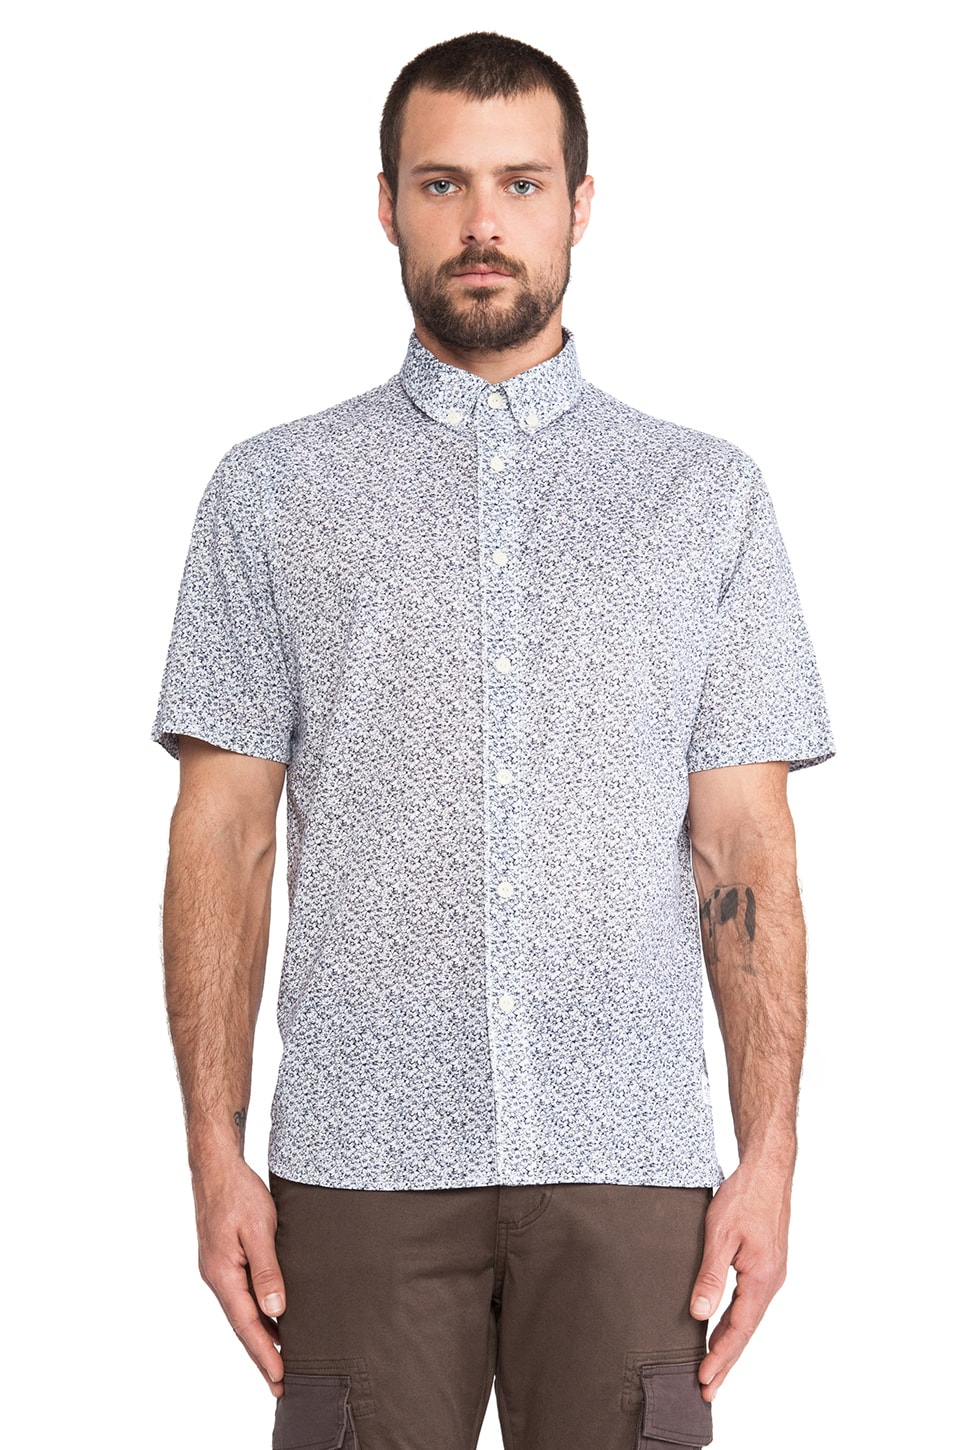 Penfield Radford Floral Print Shirt in Light Blue